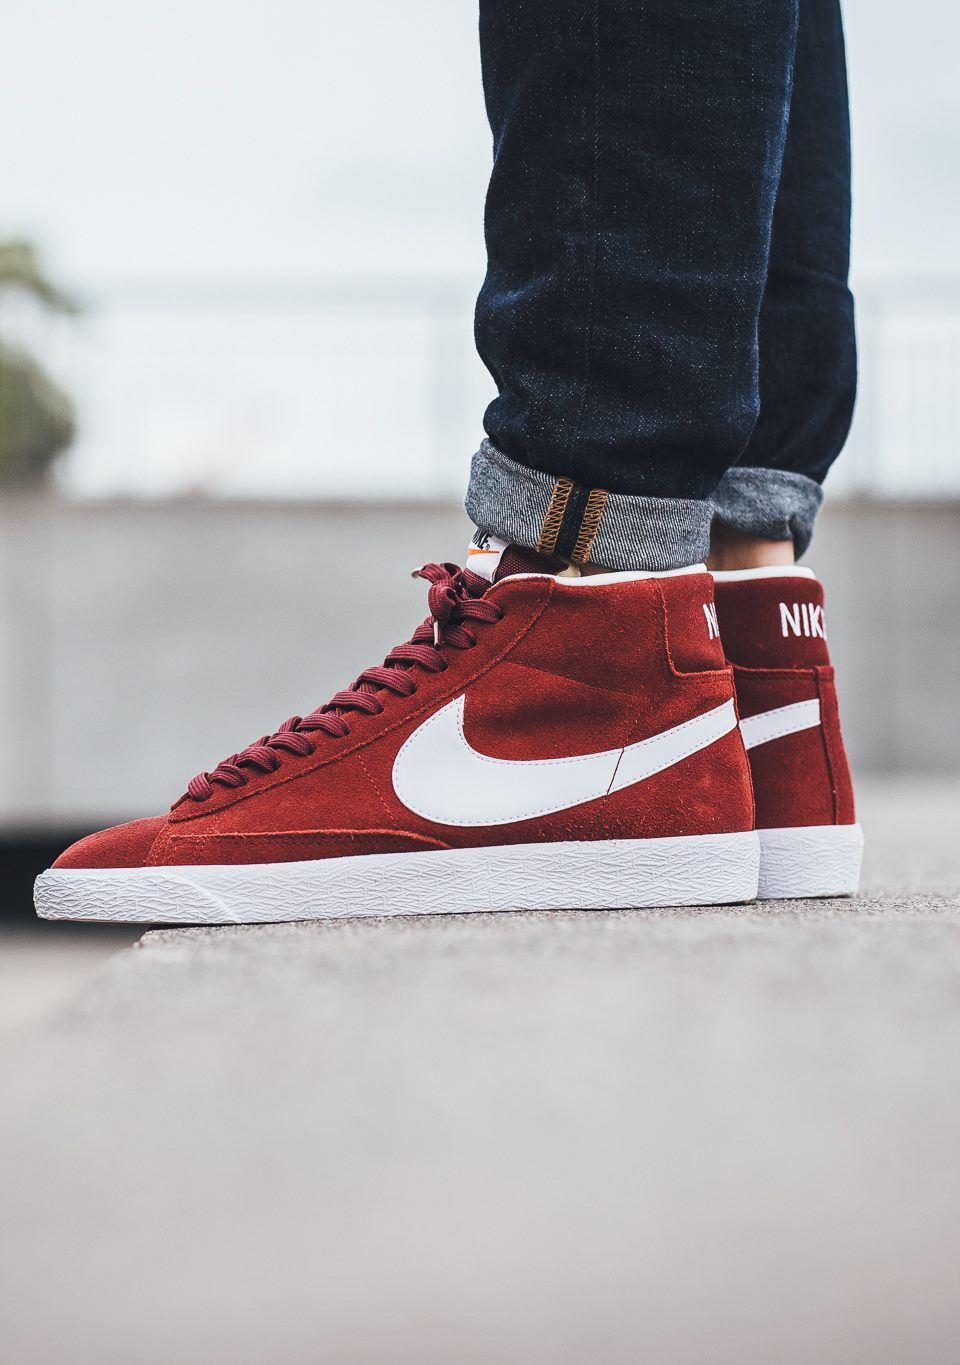 low priced 91bf0 06d08 Nike Blazer Mid Premium Team Red sneakernews Sneakers StreetStyle Kicks